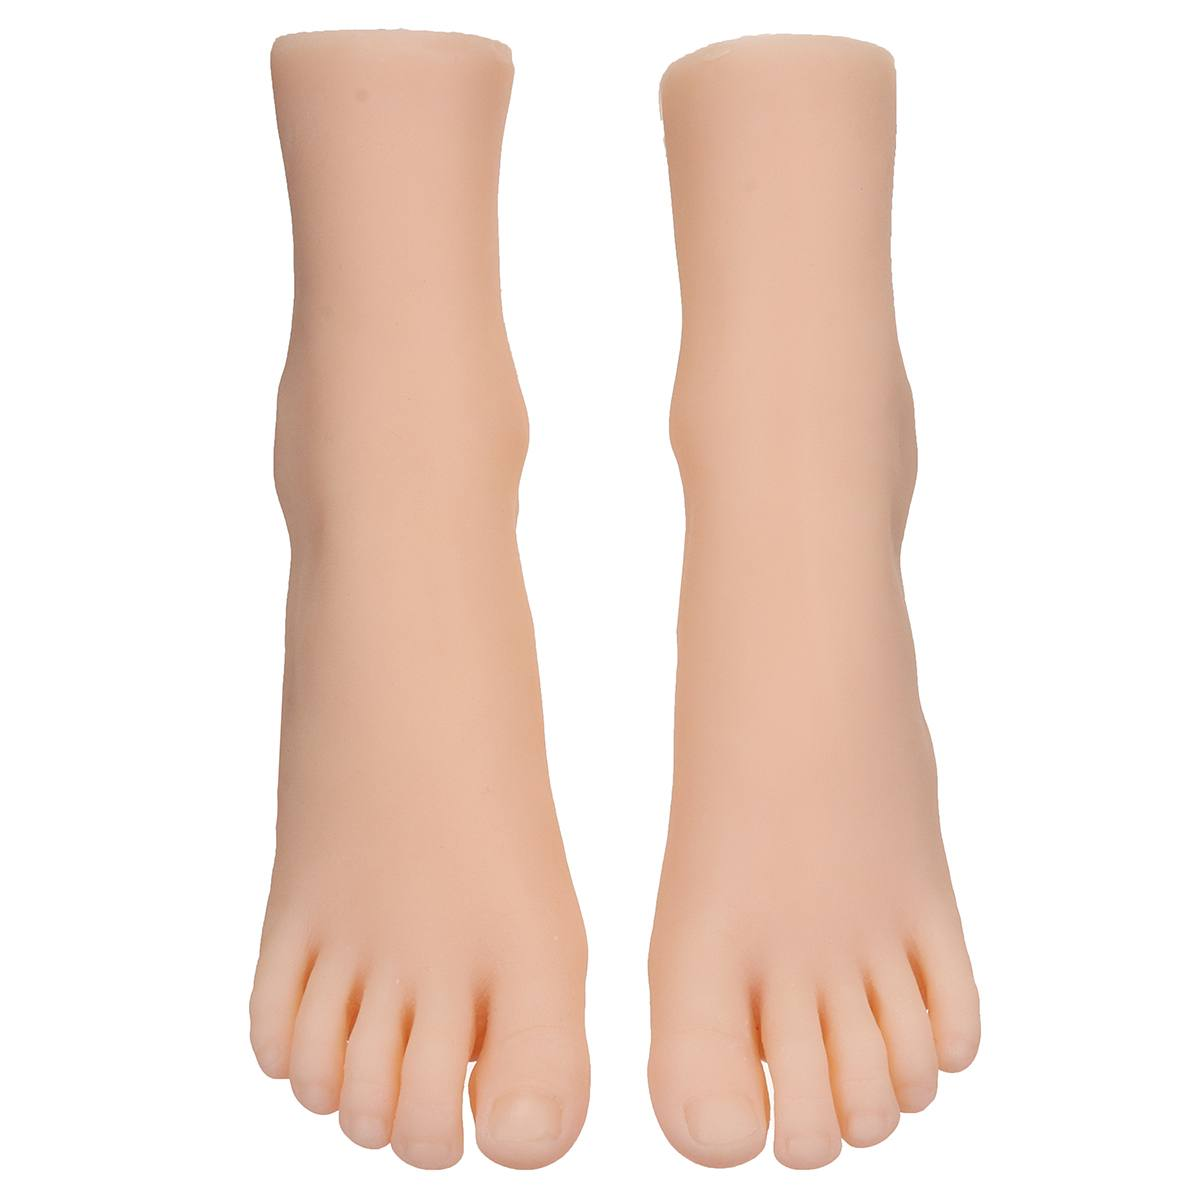 29 Size 1 Pair Realistic Female Foot Sock Silicone Girl Feet Mannequin Foot Model Tools For